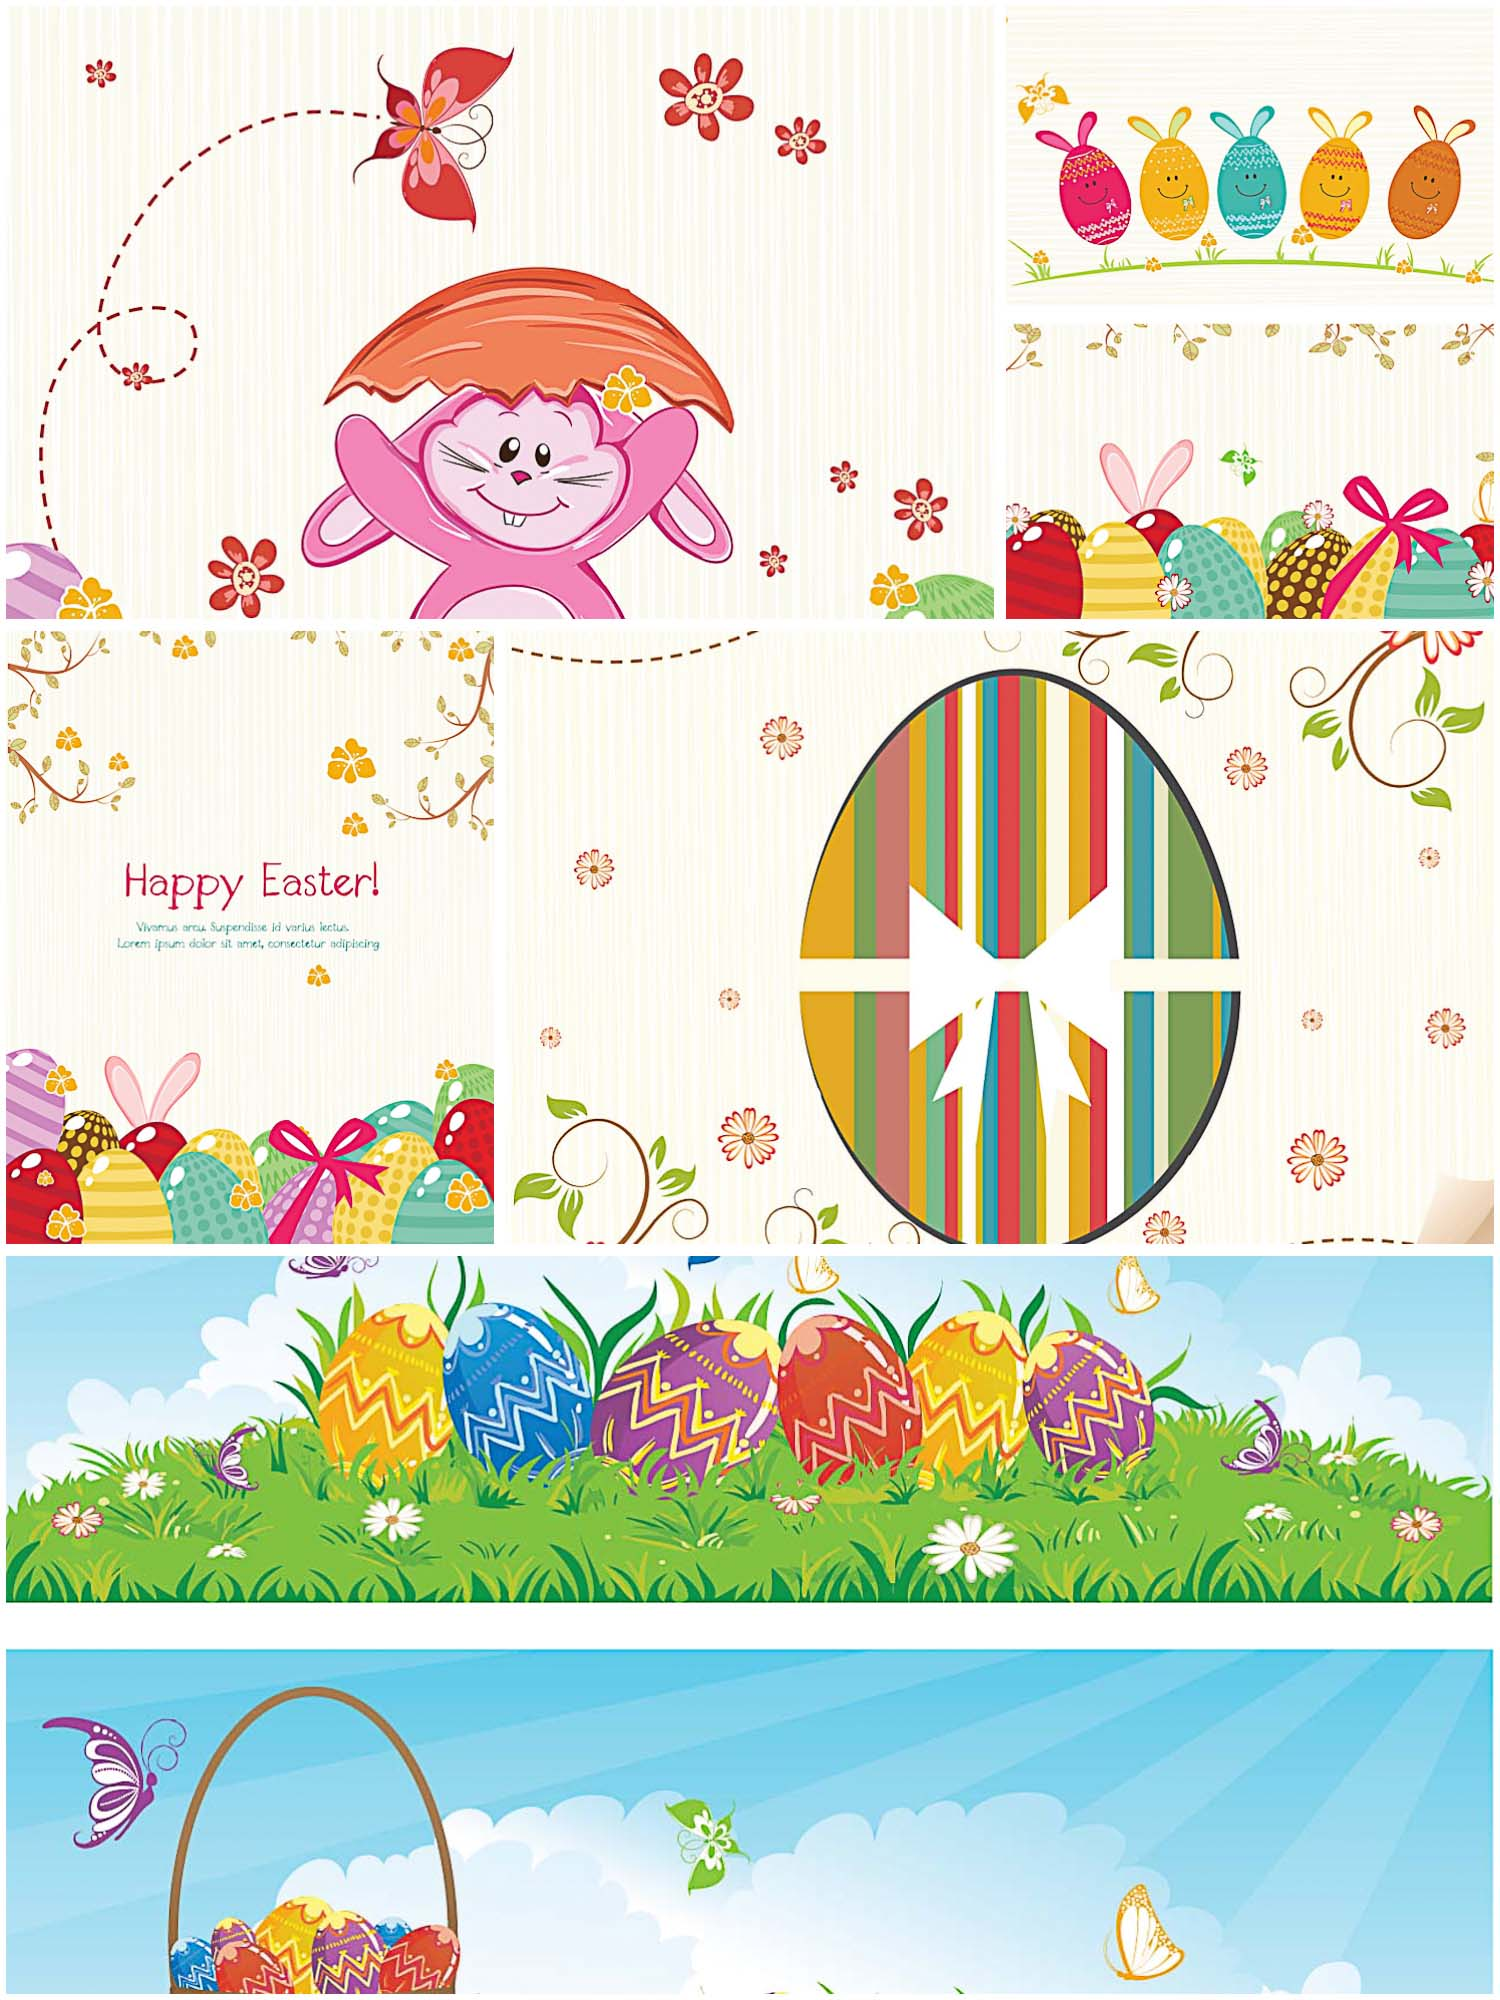 Bright Festive Easter Greeting Cards Free Download